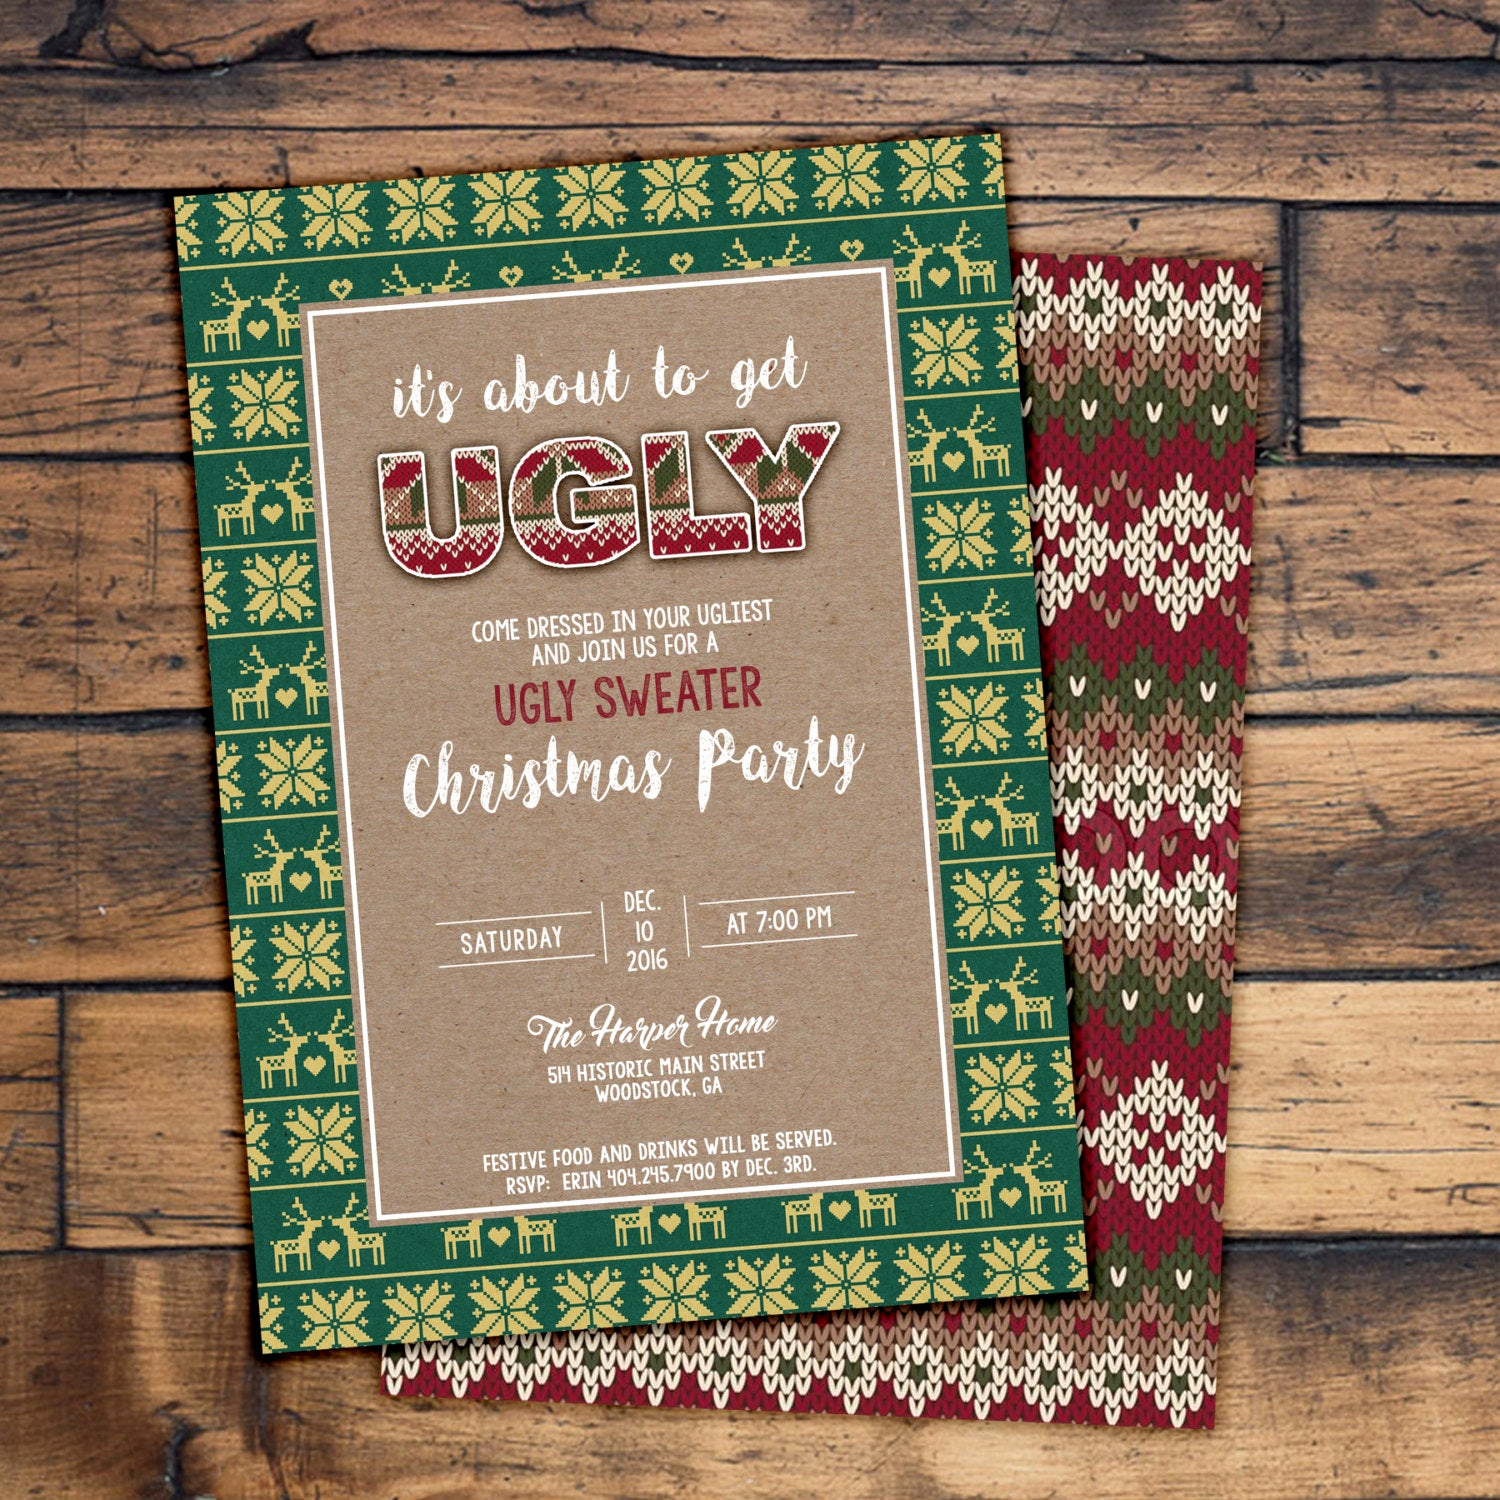 Ugly Sweater Party Invitation Elegant Ugly Sweater Christmas Party Invitation Digital File or